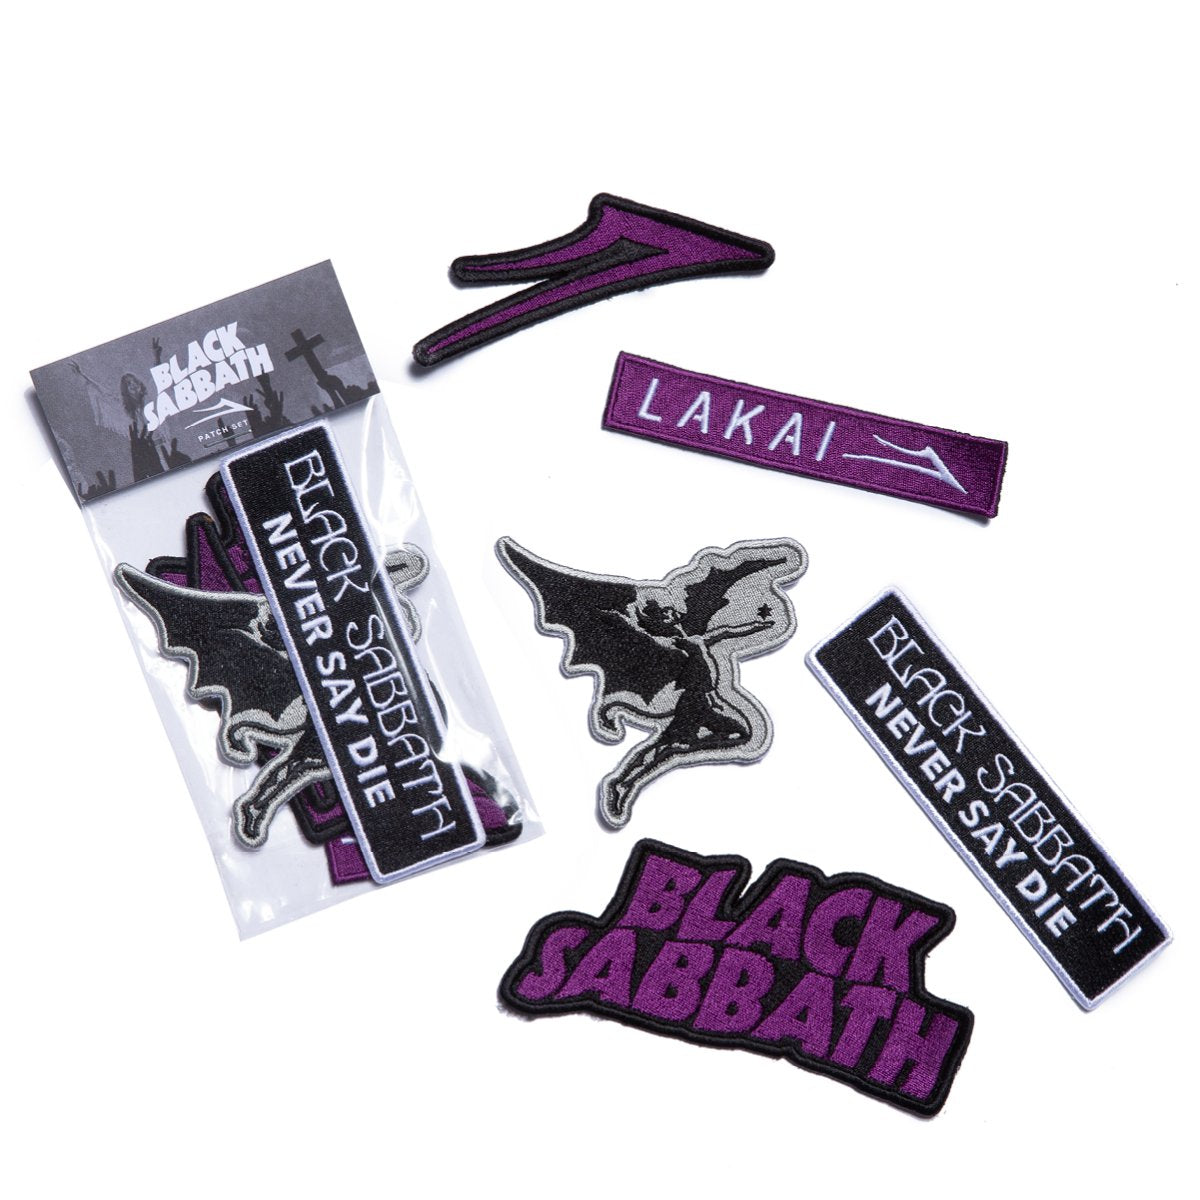 BLACK SABBATH PATCH KIT